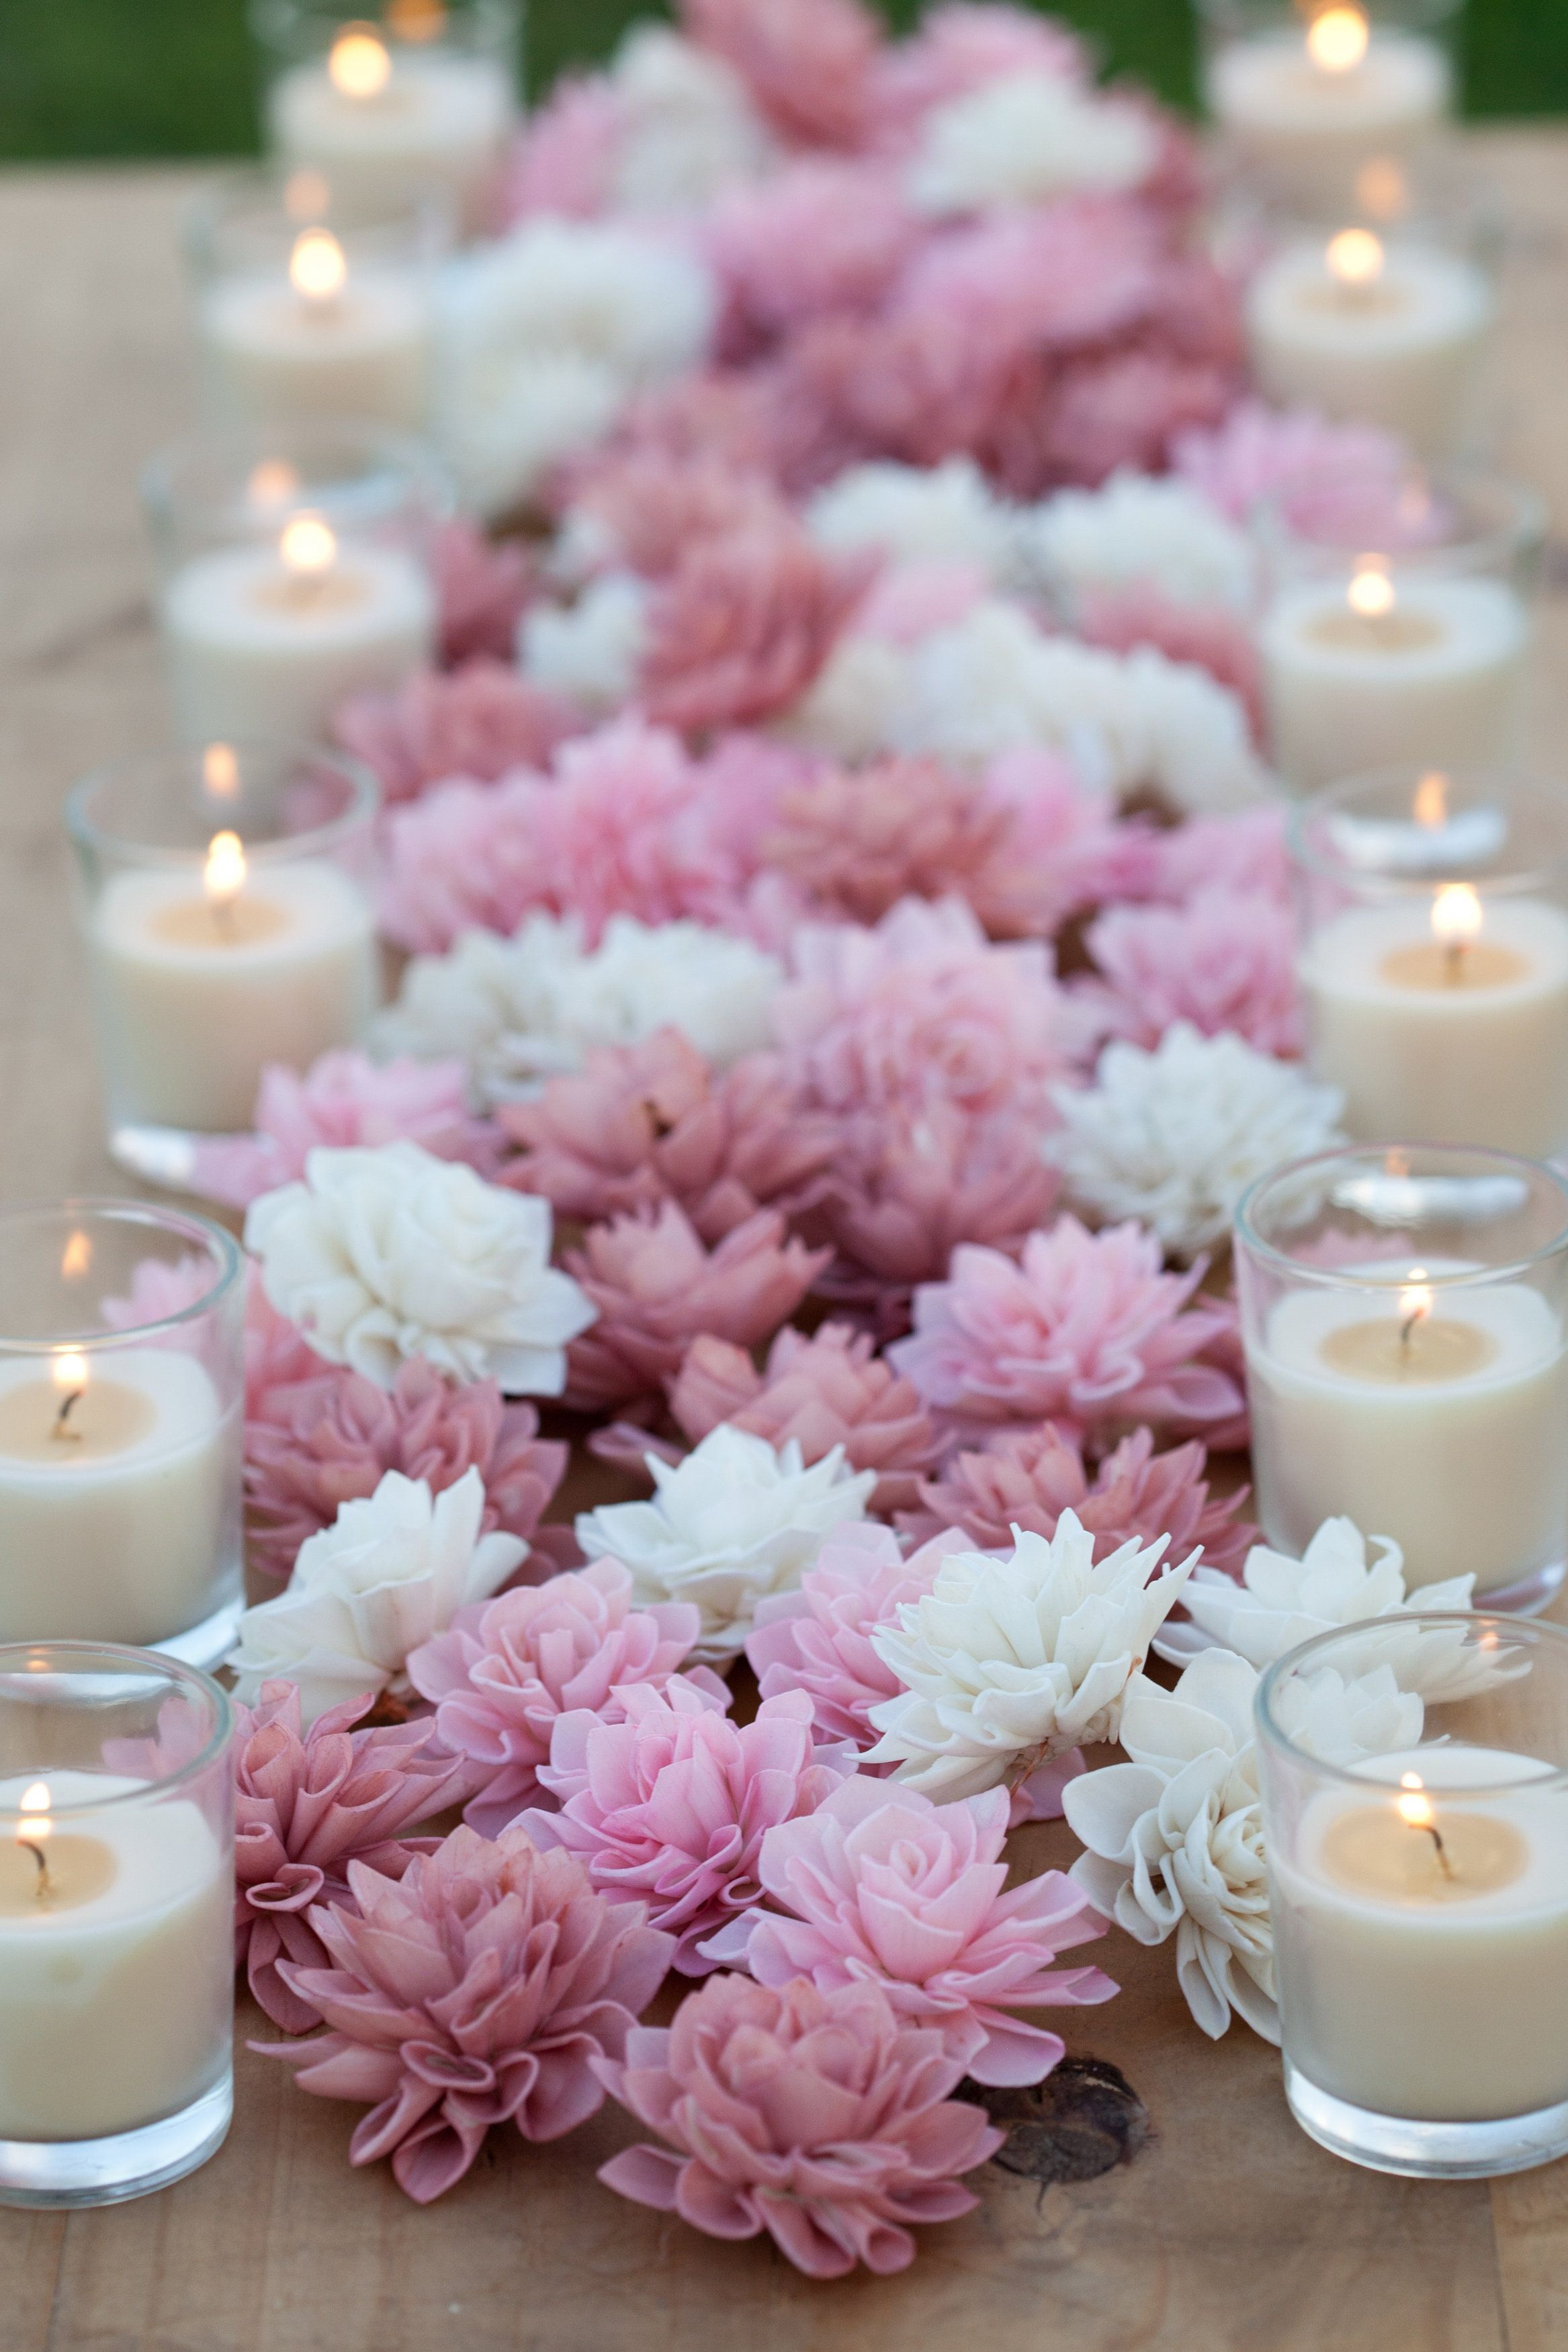 wedding ideas with the hottest pinterest ideas | angel's wedding